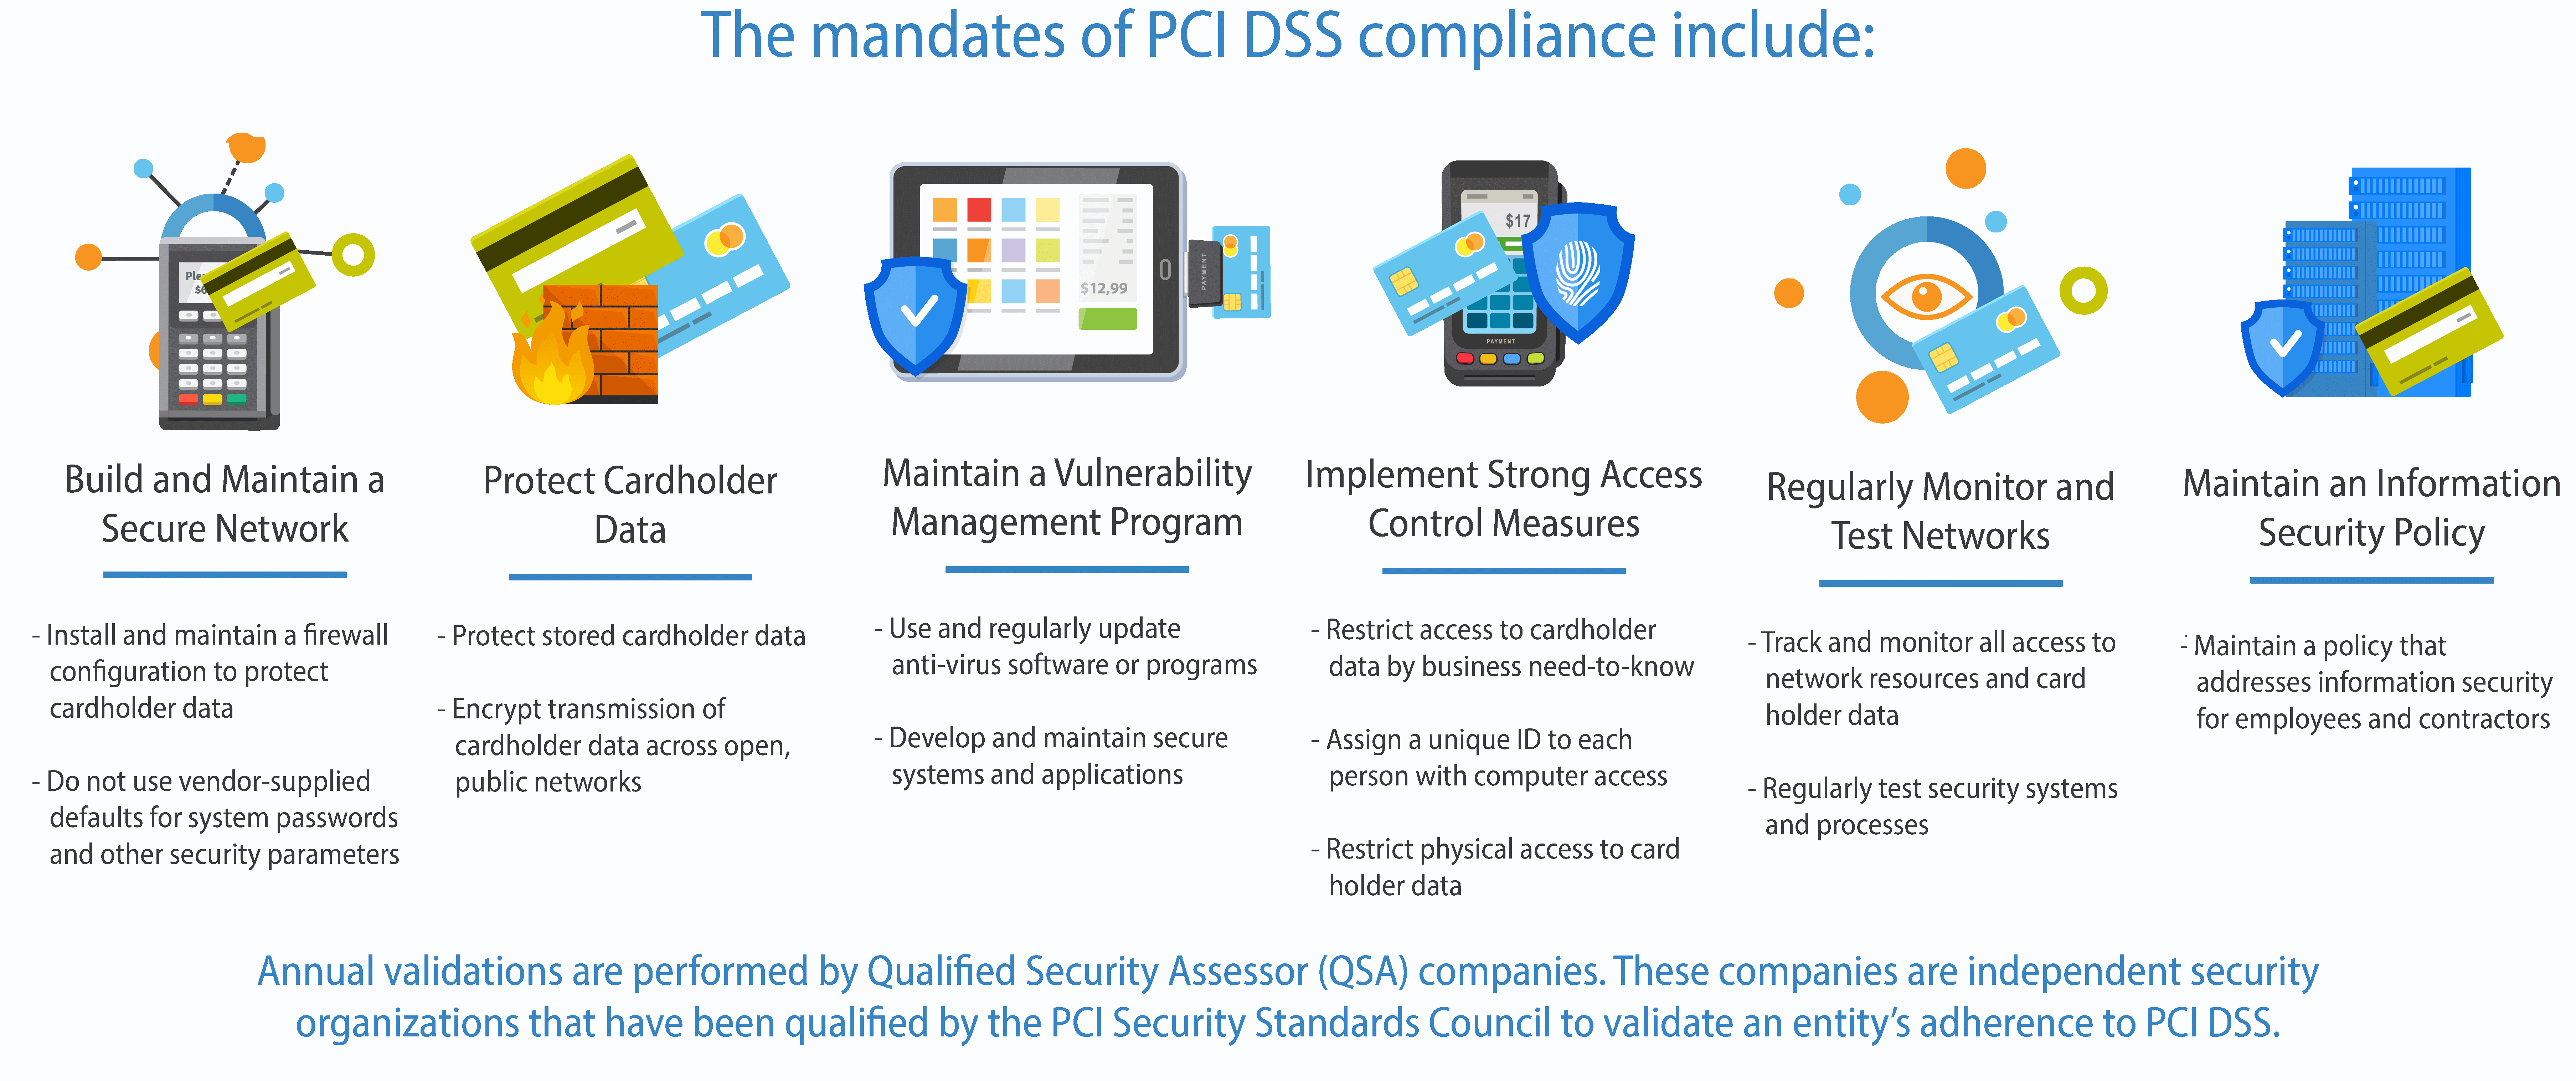 image-Is-PCI-DSS-Applicable-To-Mobile-Device-Management-Solutions